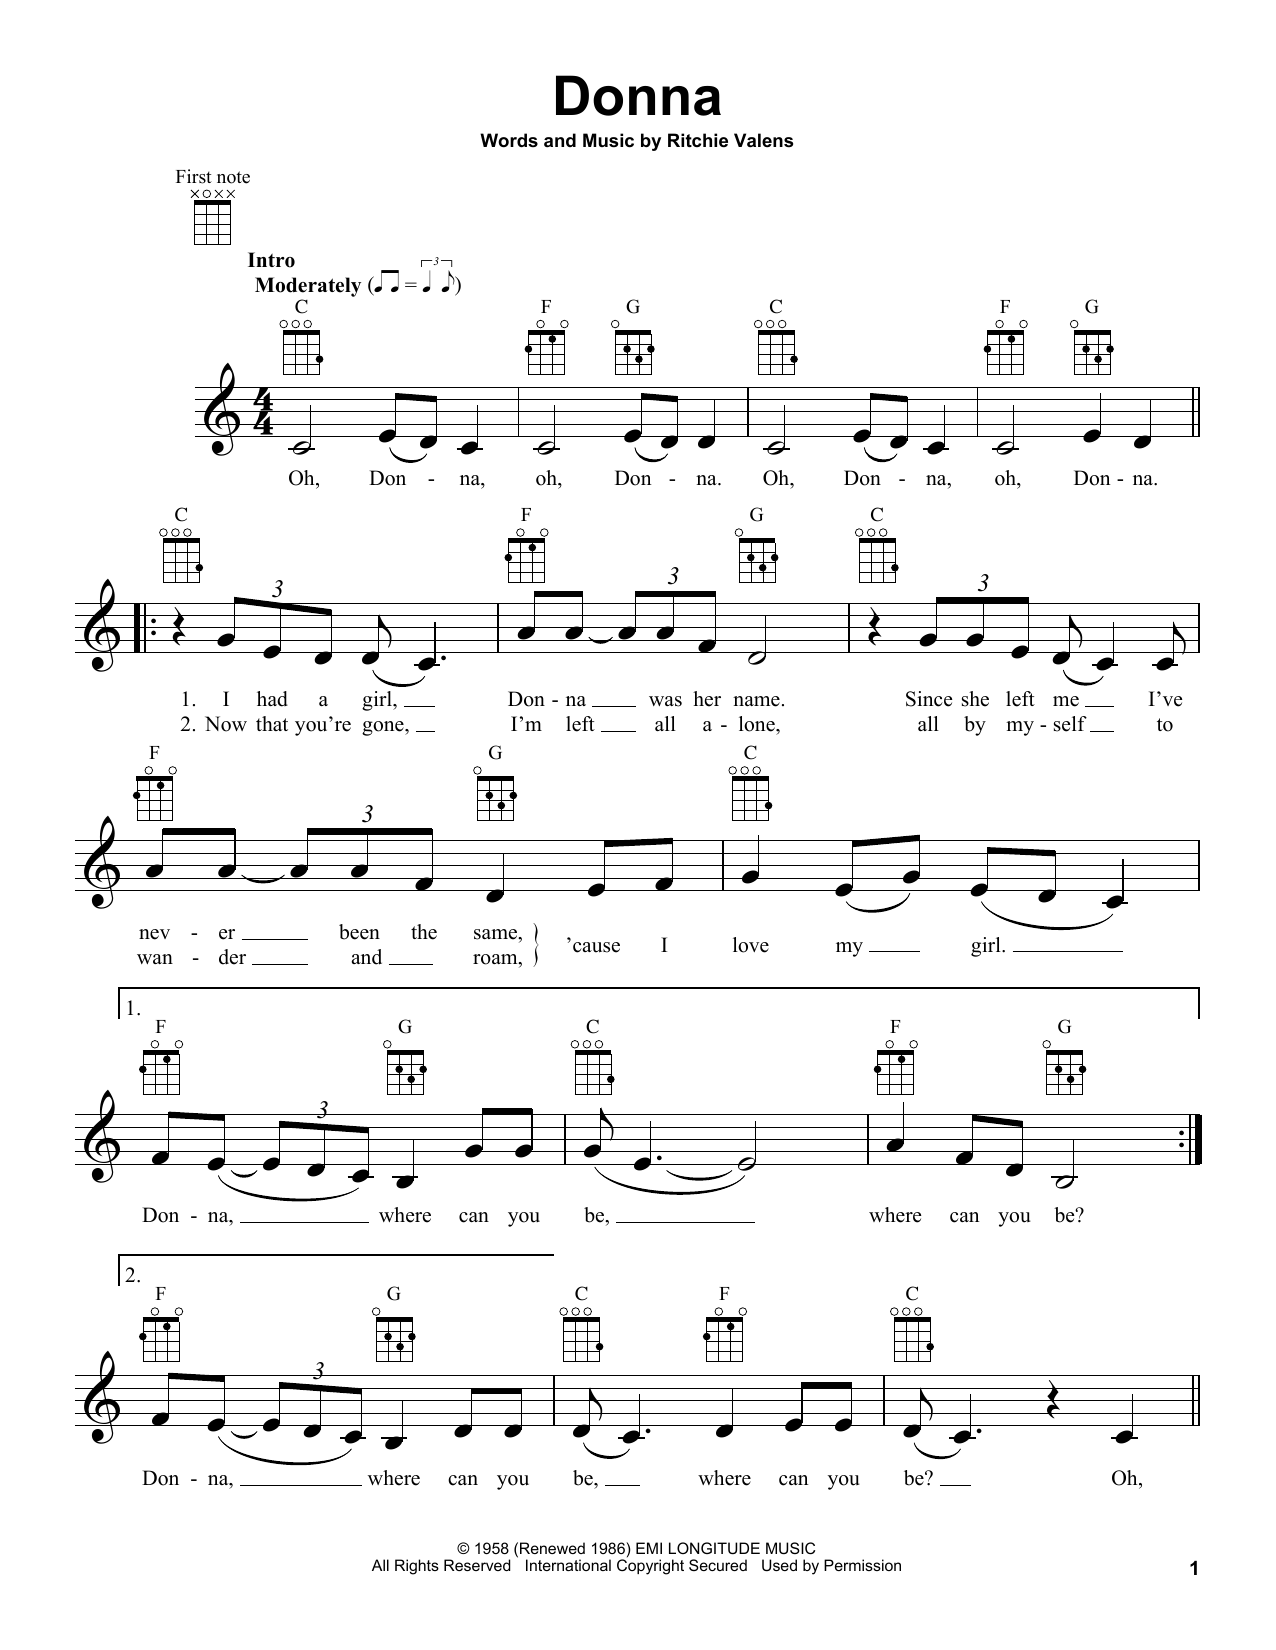 Ritchie Valens Donna Sheet Music Notes Chords Printable Pop